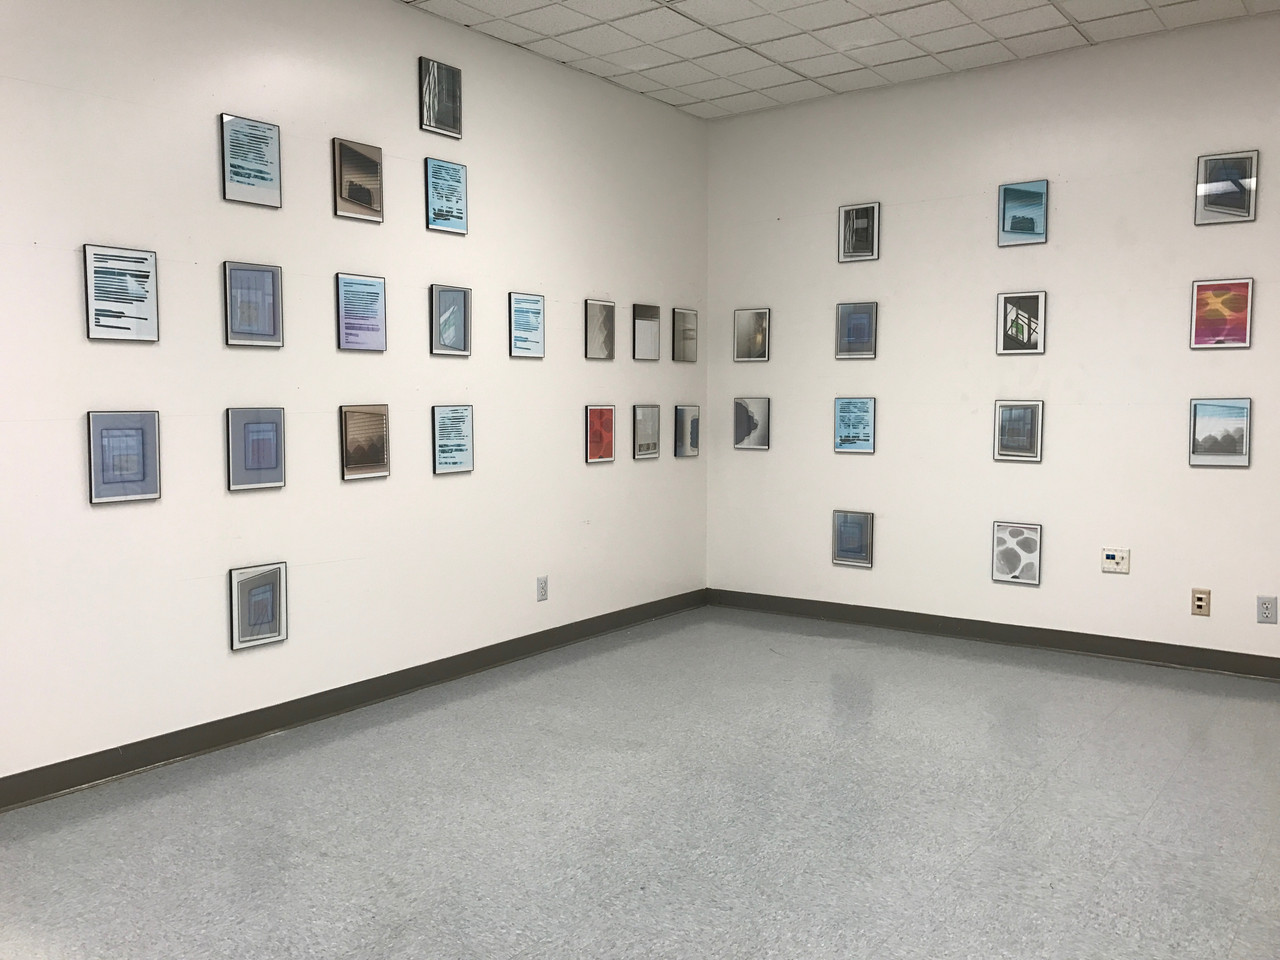 Amy Cella. Installation view of Search and Destroy, Just Be Careful in the Corner and You Move Fast, I Count Slow, 2017. Inkjet prints in 33 black plastic frames.